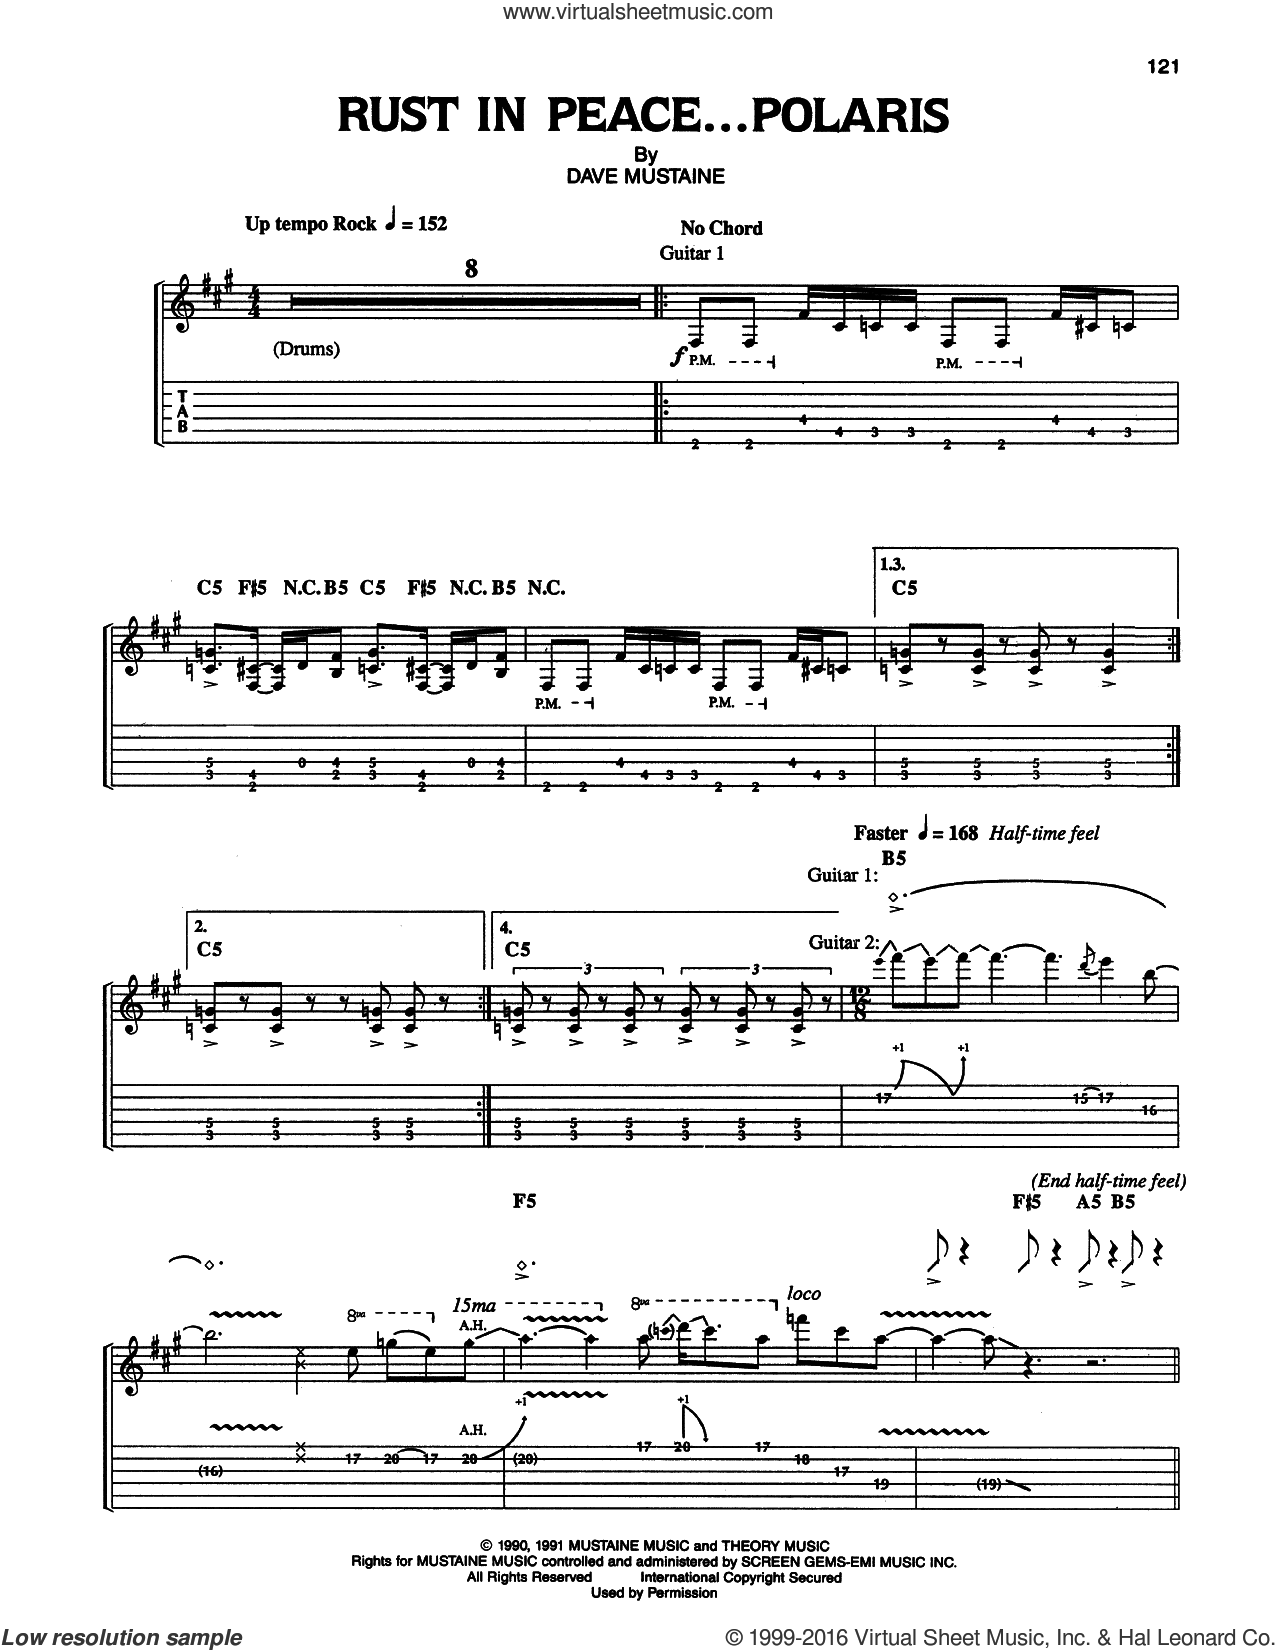 Rust In Peace...Polaris sheet music for guitar (tablature) by Megadeth and Dave Mustaine, intermediate skill level